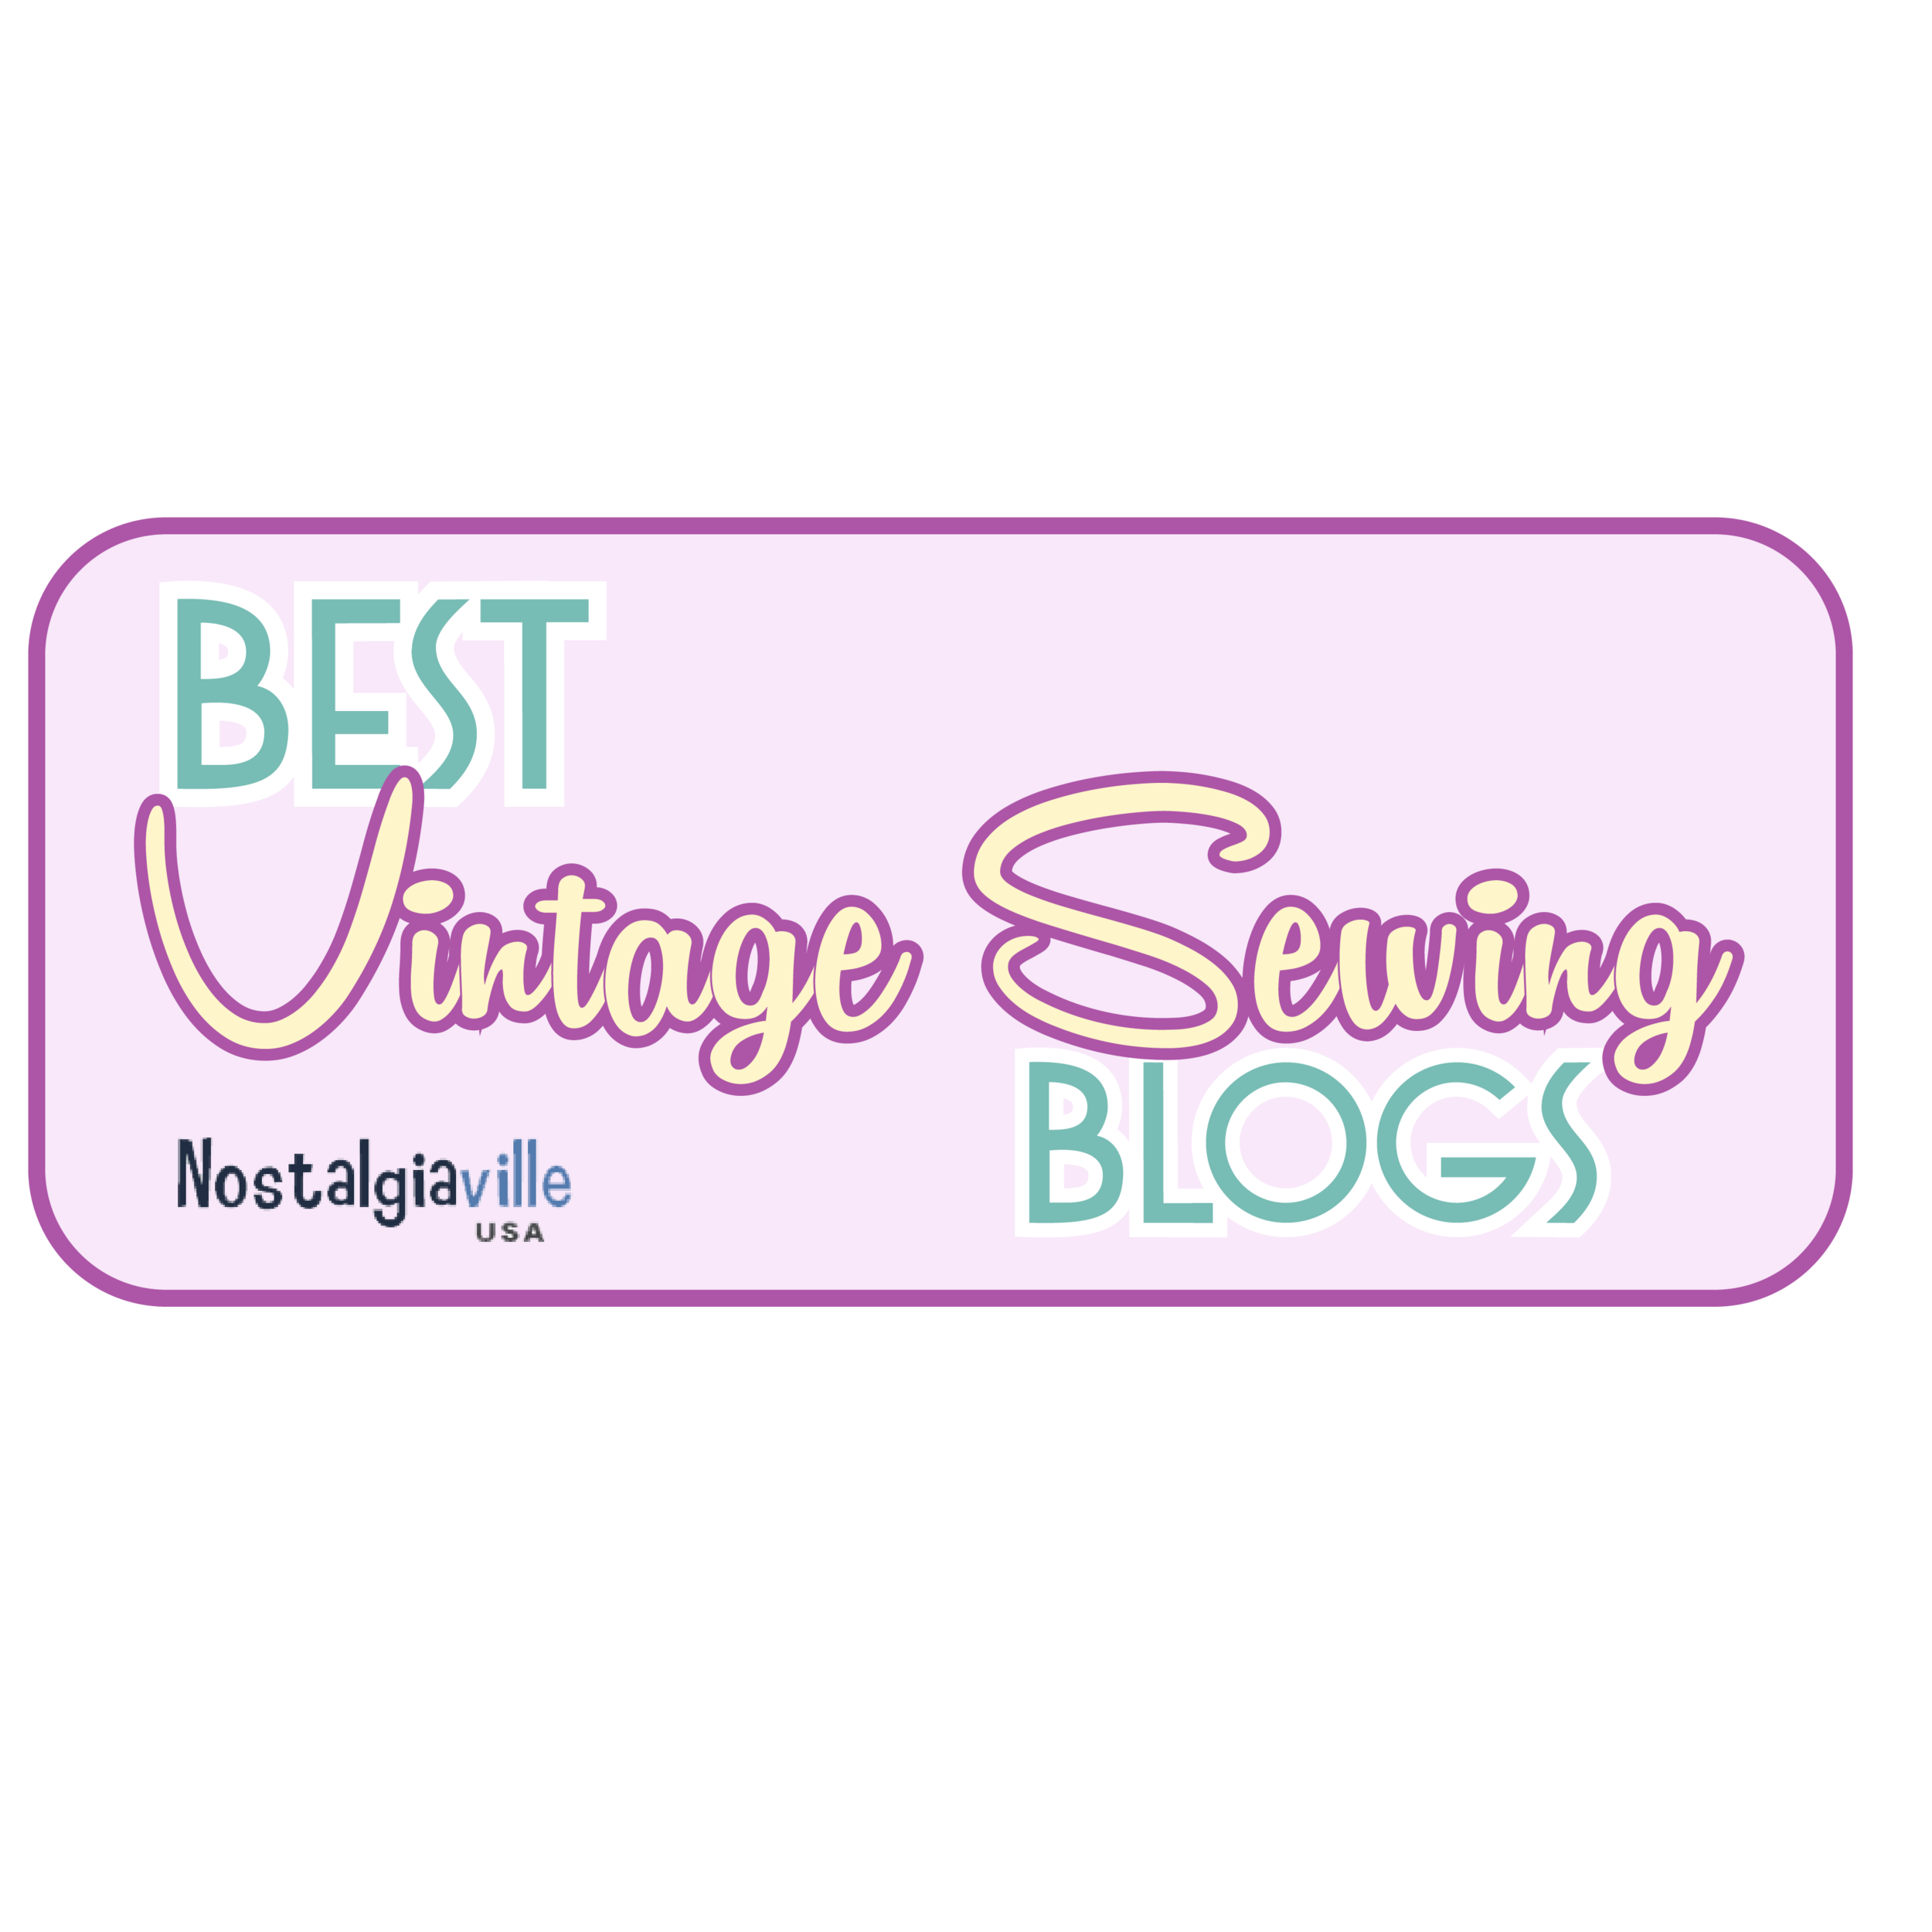 We were named as one of the best Vintage Sewing Blogs by Nostaliaville!   Visit the post here.